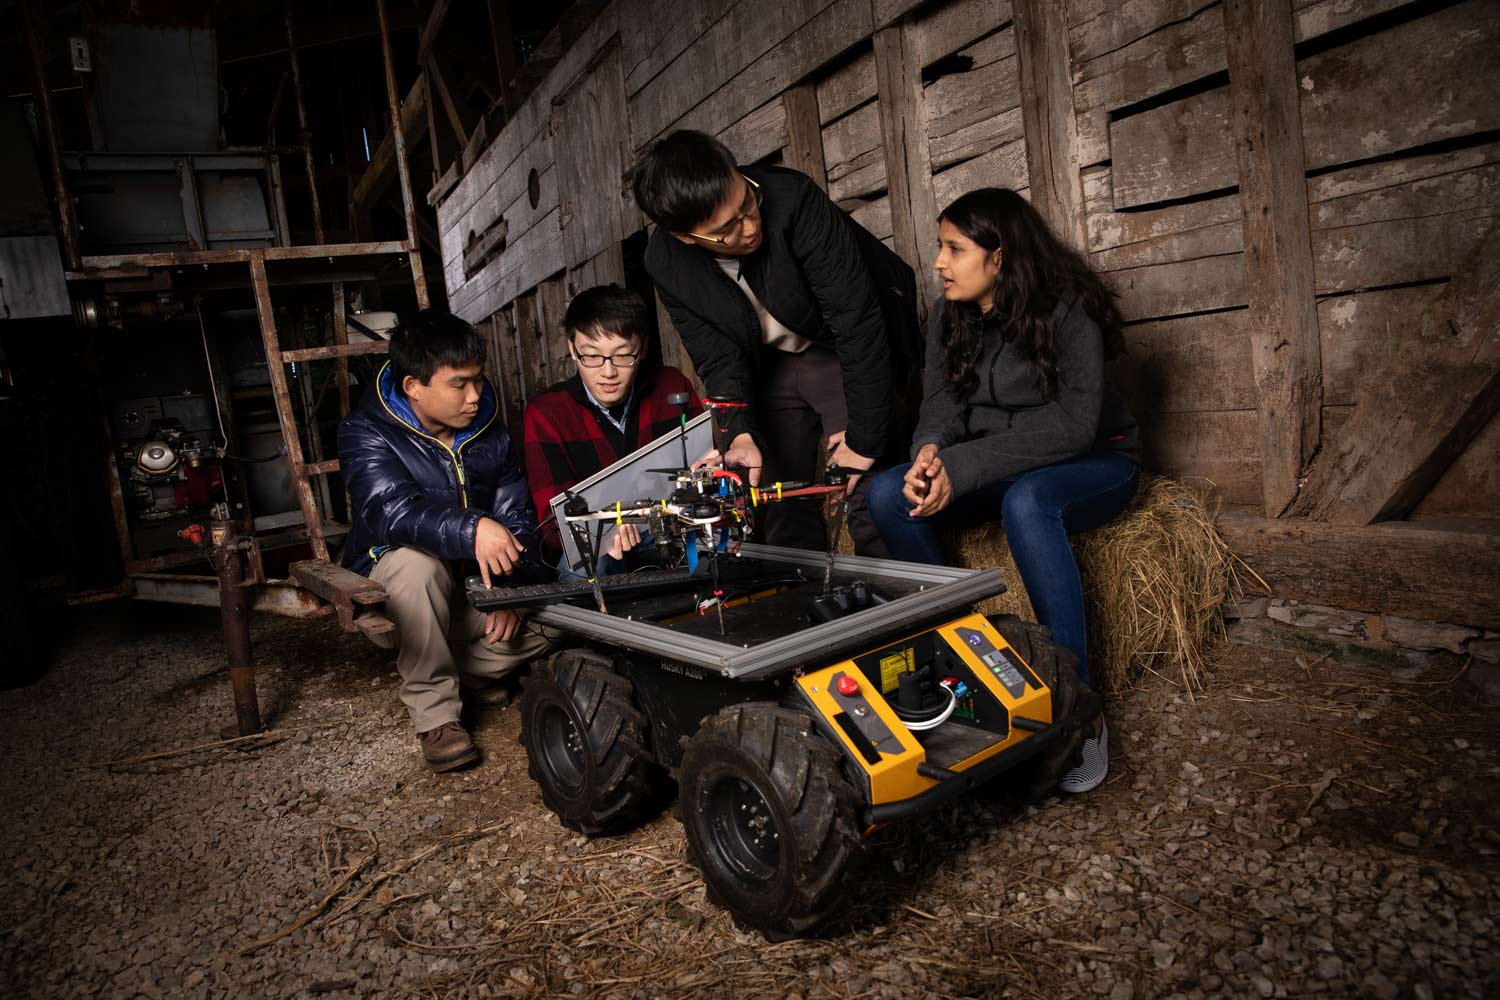 Four students crowd around a drone and ground vehicle while sitting inside a barn.